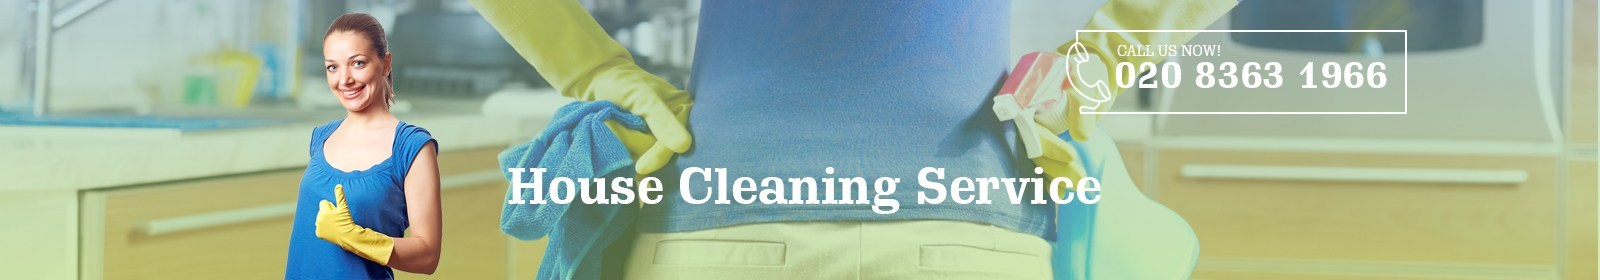 FK Domestics House Cleaning Services